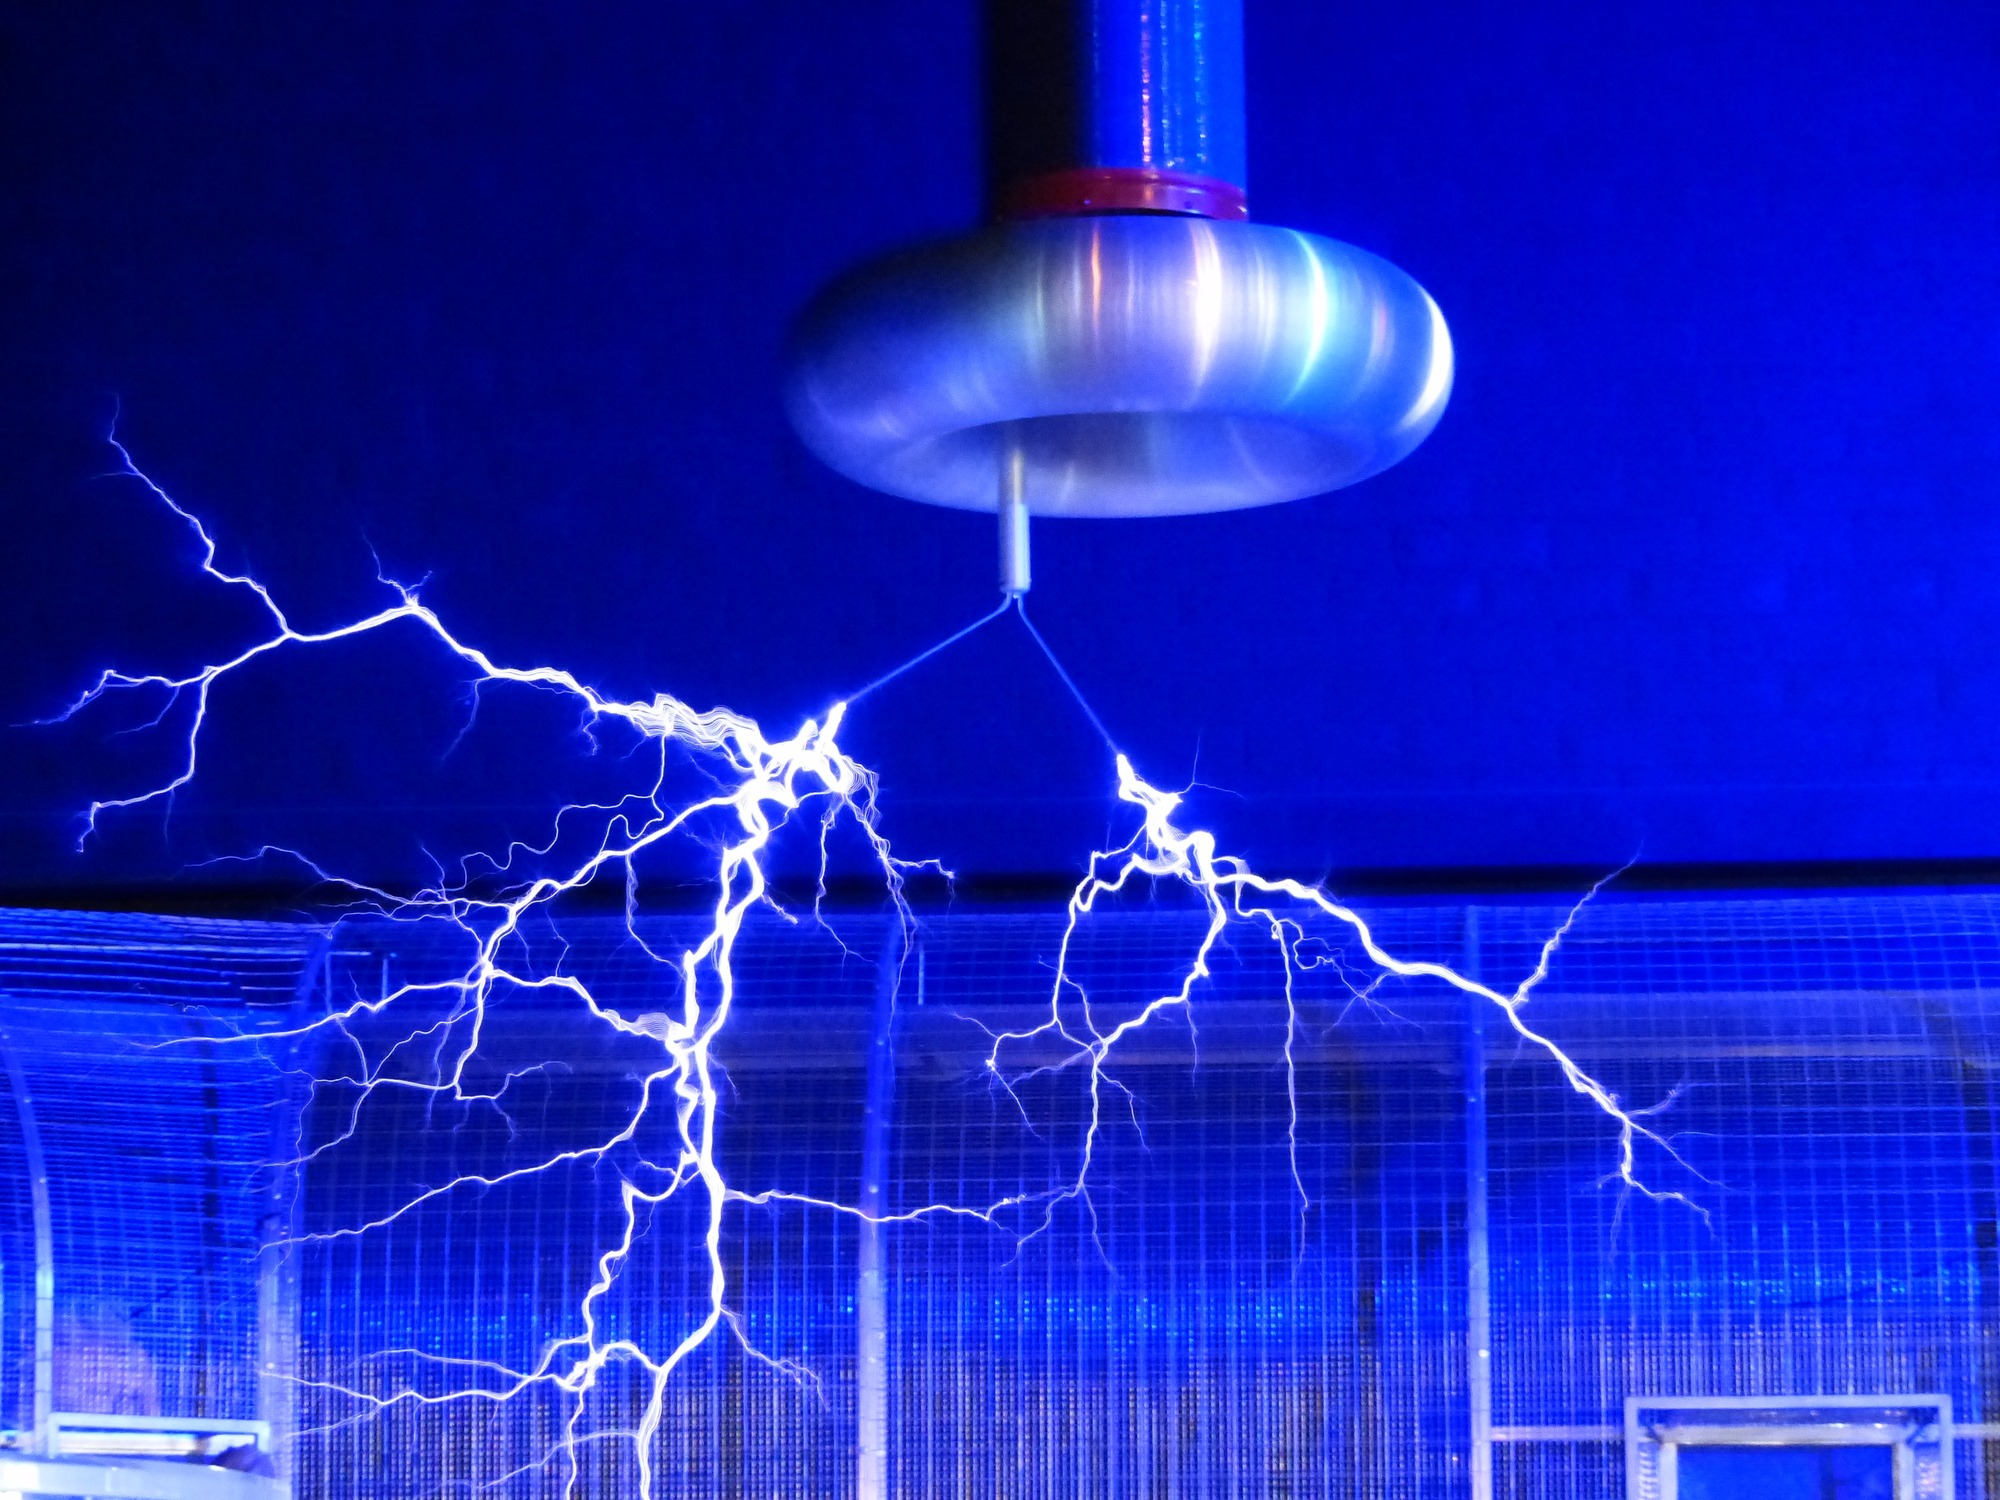 Nikola Tesla Patents: The Most Amazing Patents of the Godfather of Electricity